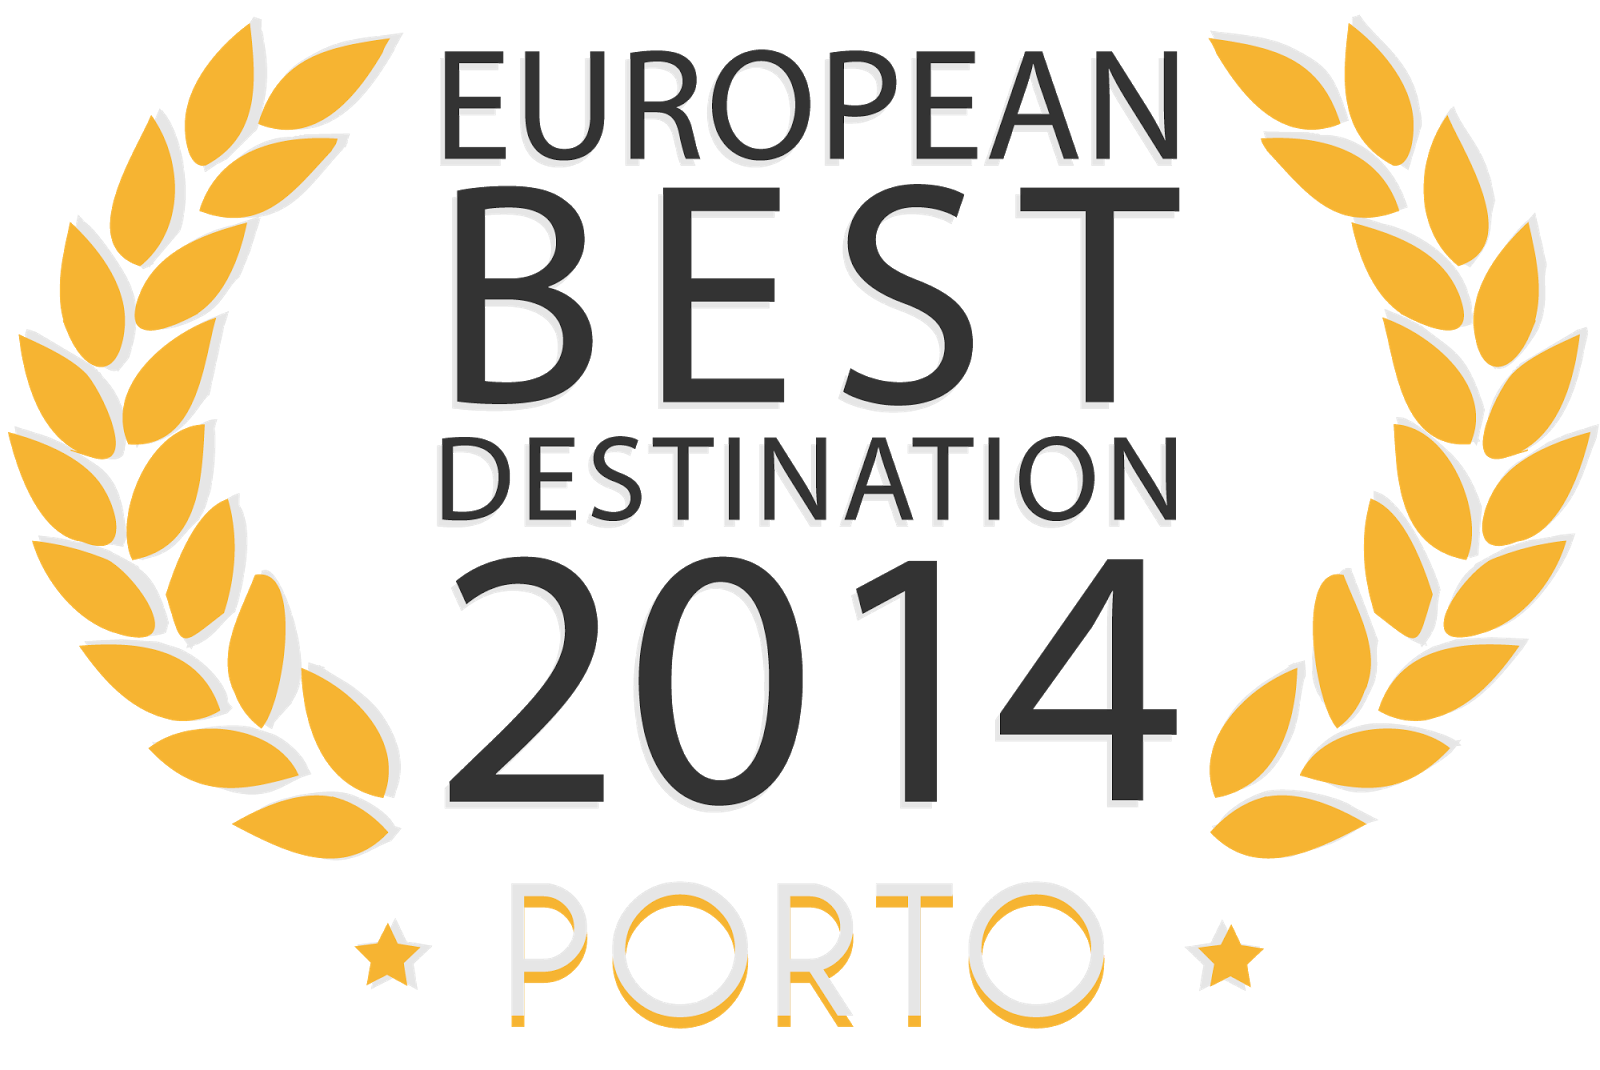 Best European Destination